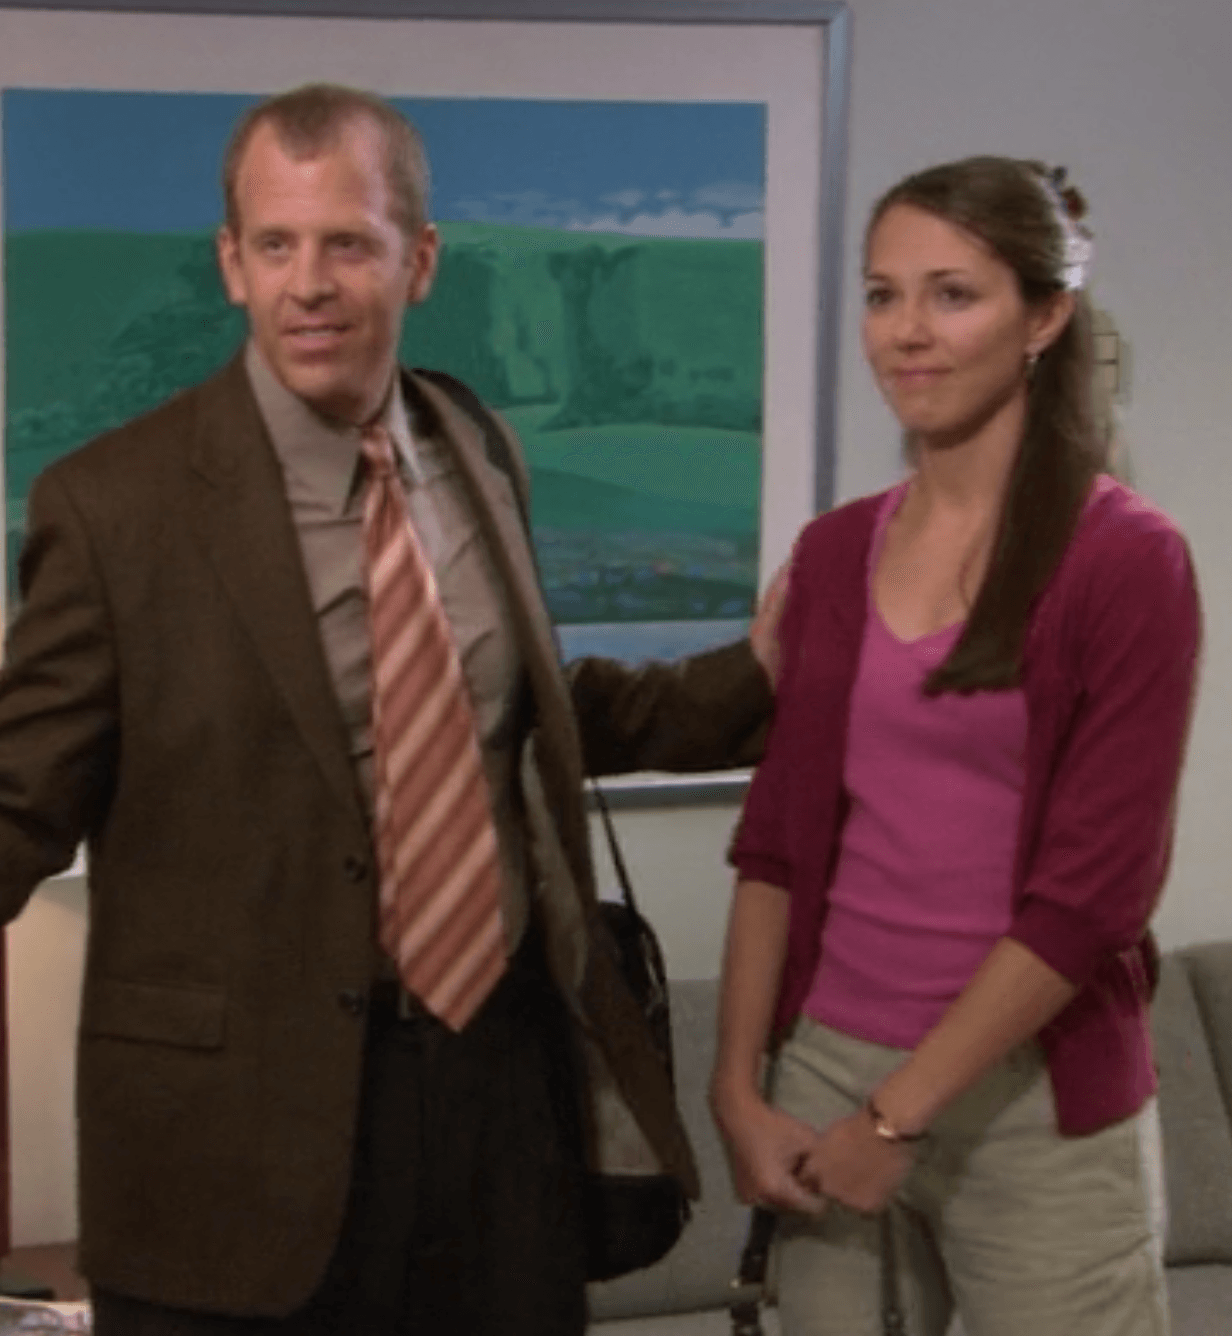 Paul Lieberstein and Janine Poreba as Toby and Amy on a 2007 episode of The Office